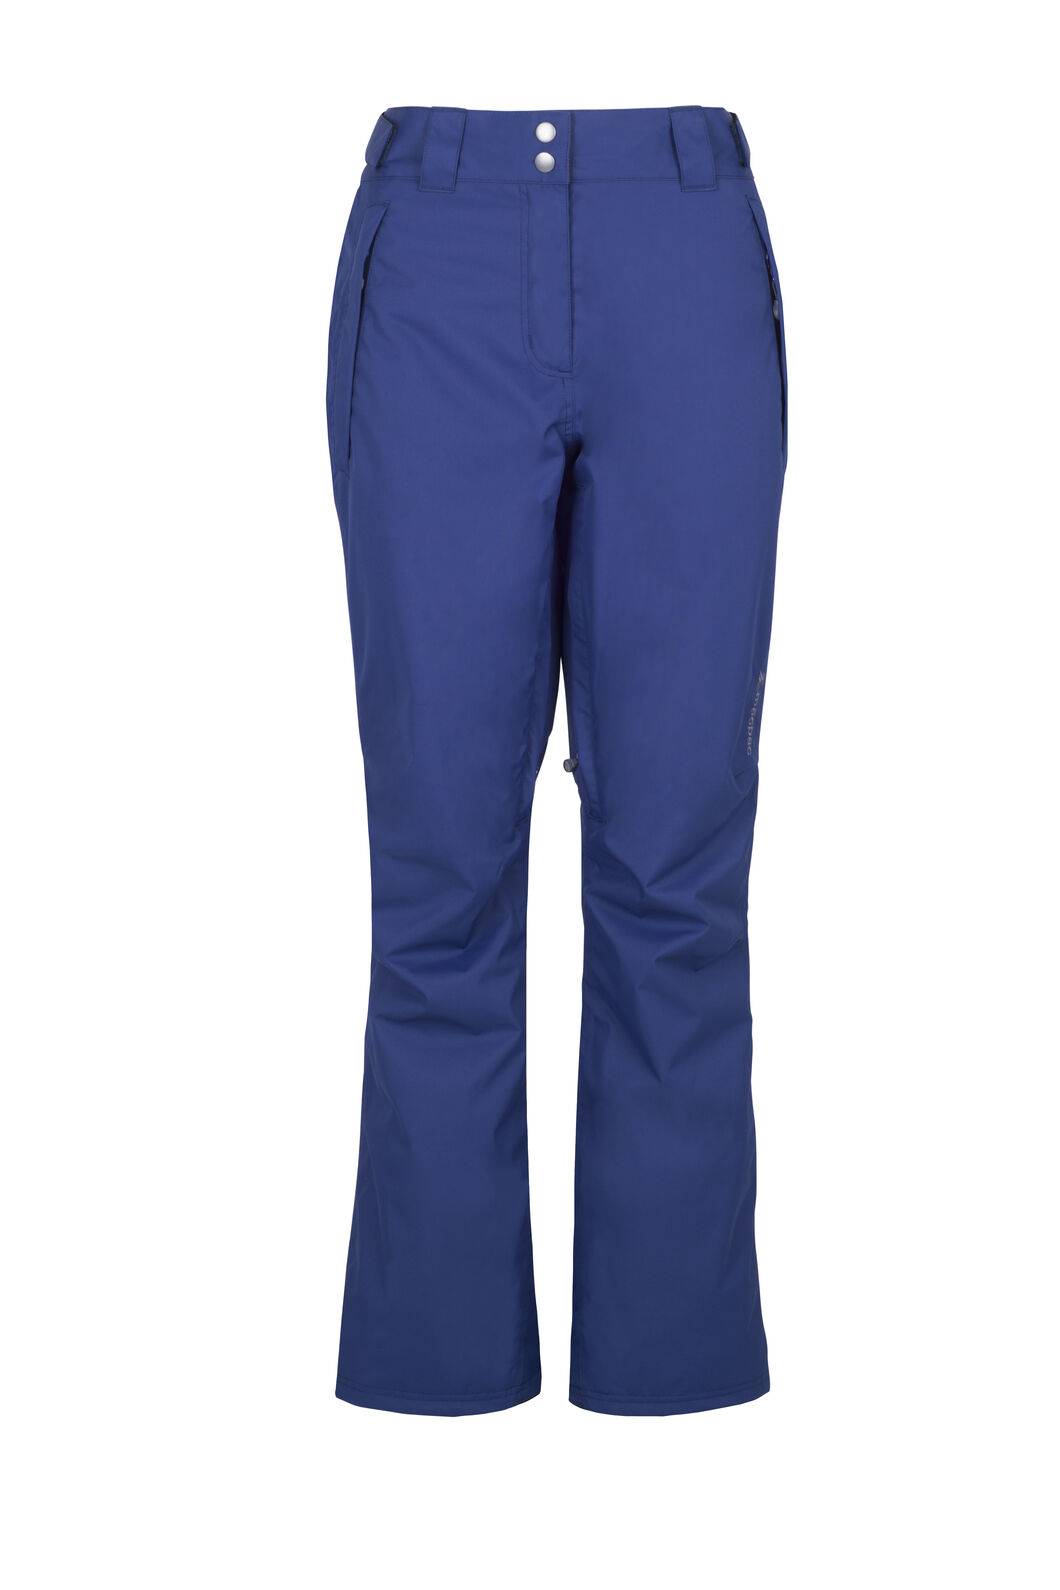 Macpac Powder Ski Pants - Women's, Medieval Blue, hi-res